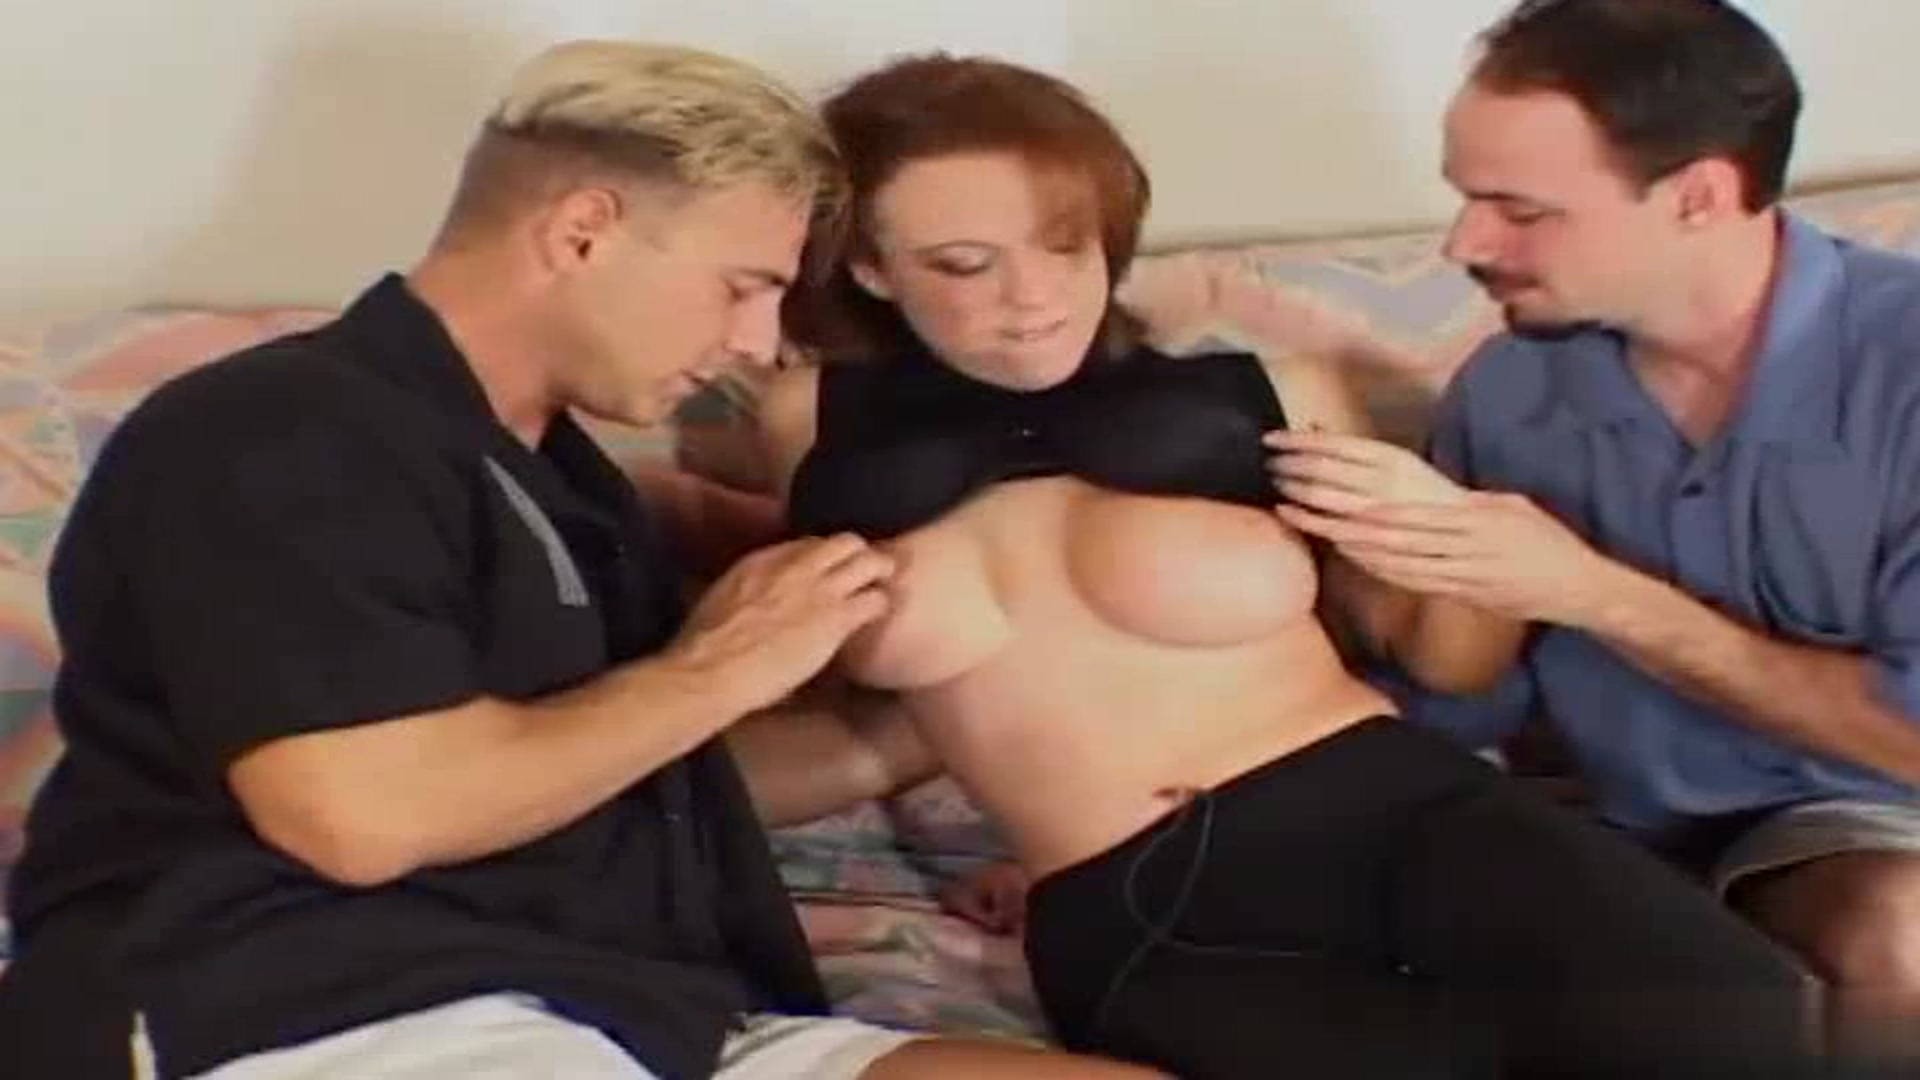 Mr big dicks victoria video